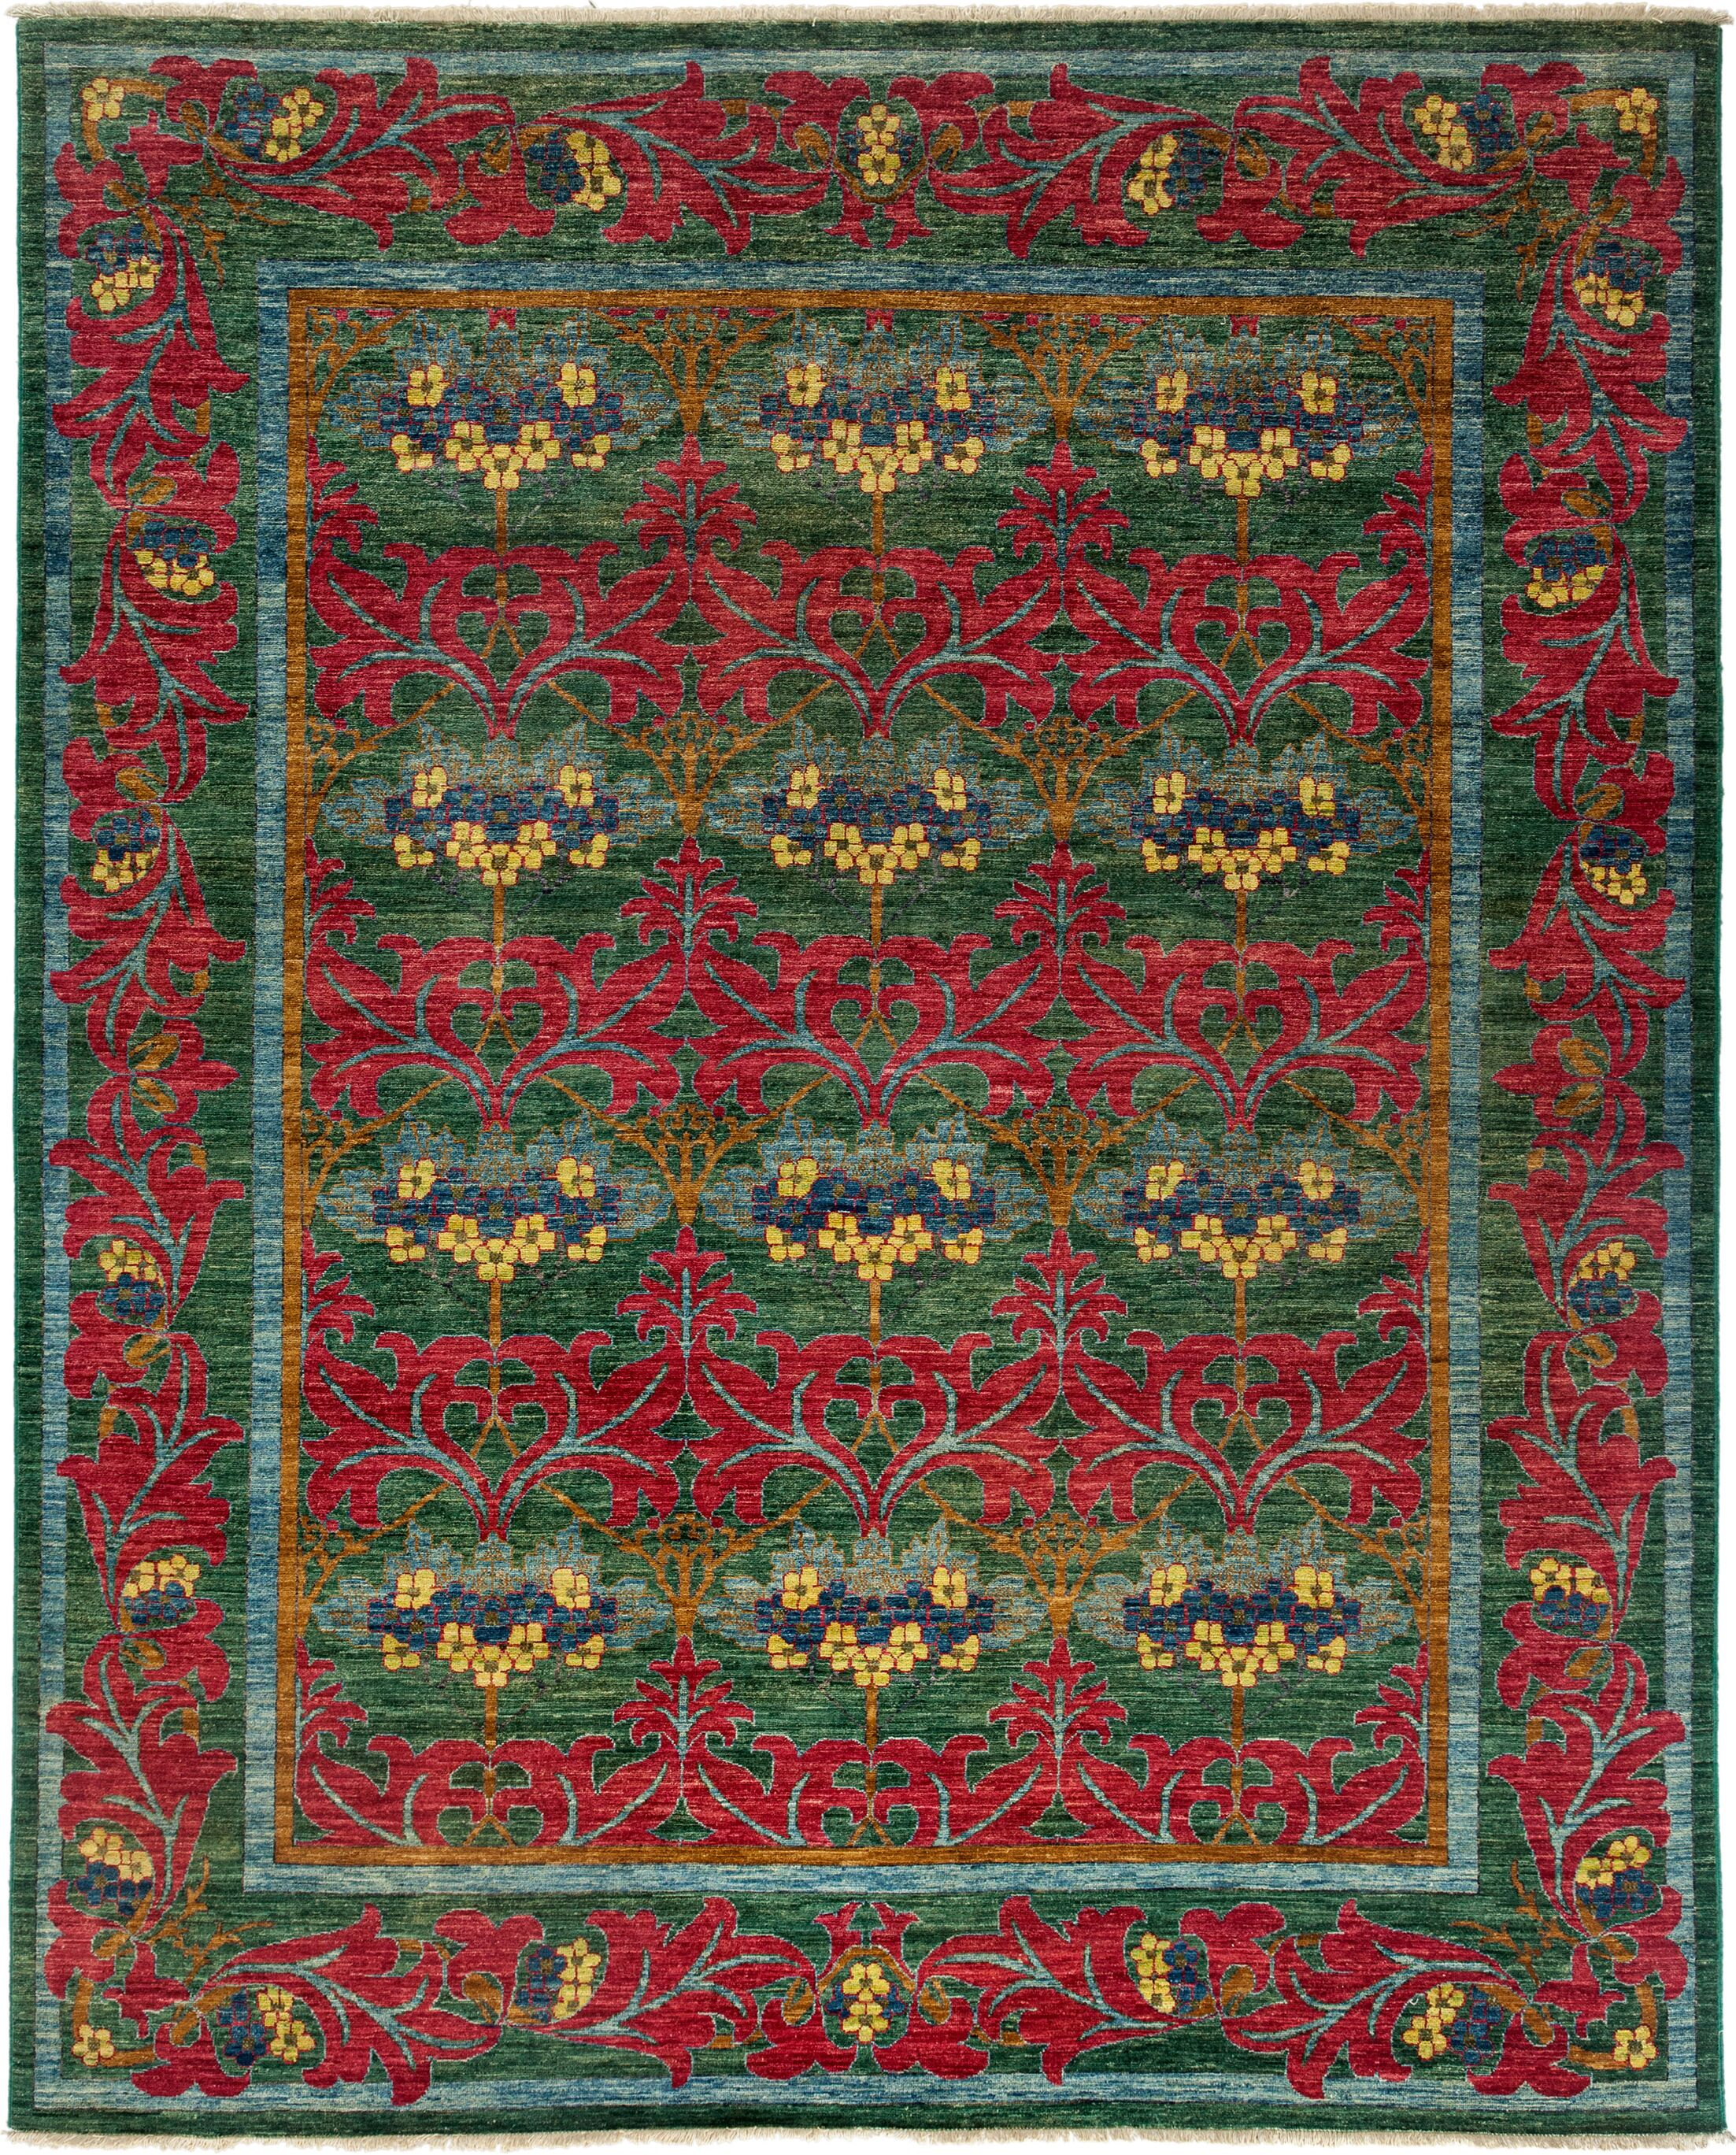 One-of-a-Kind Arts and Crafts Hand-Knotted Green / Red Area Rug